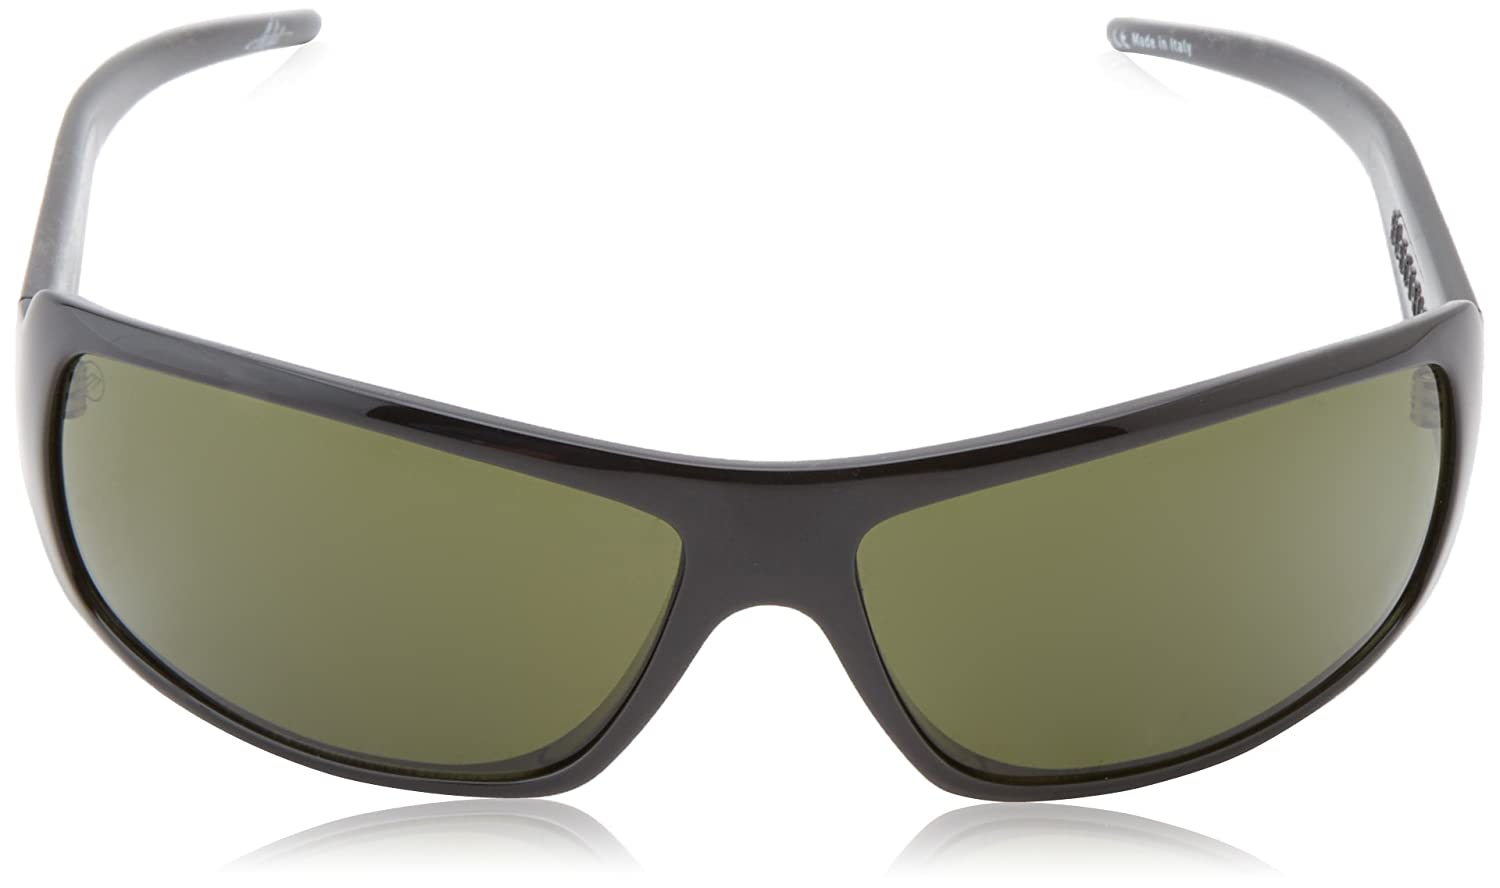 Electric California Charge Wrap Sunglasses, Black Eyed Tortoise, 164 mm